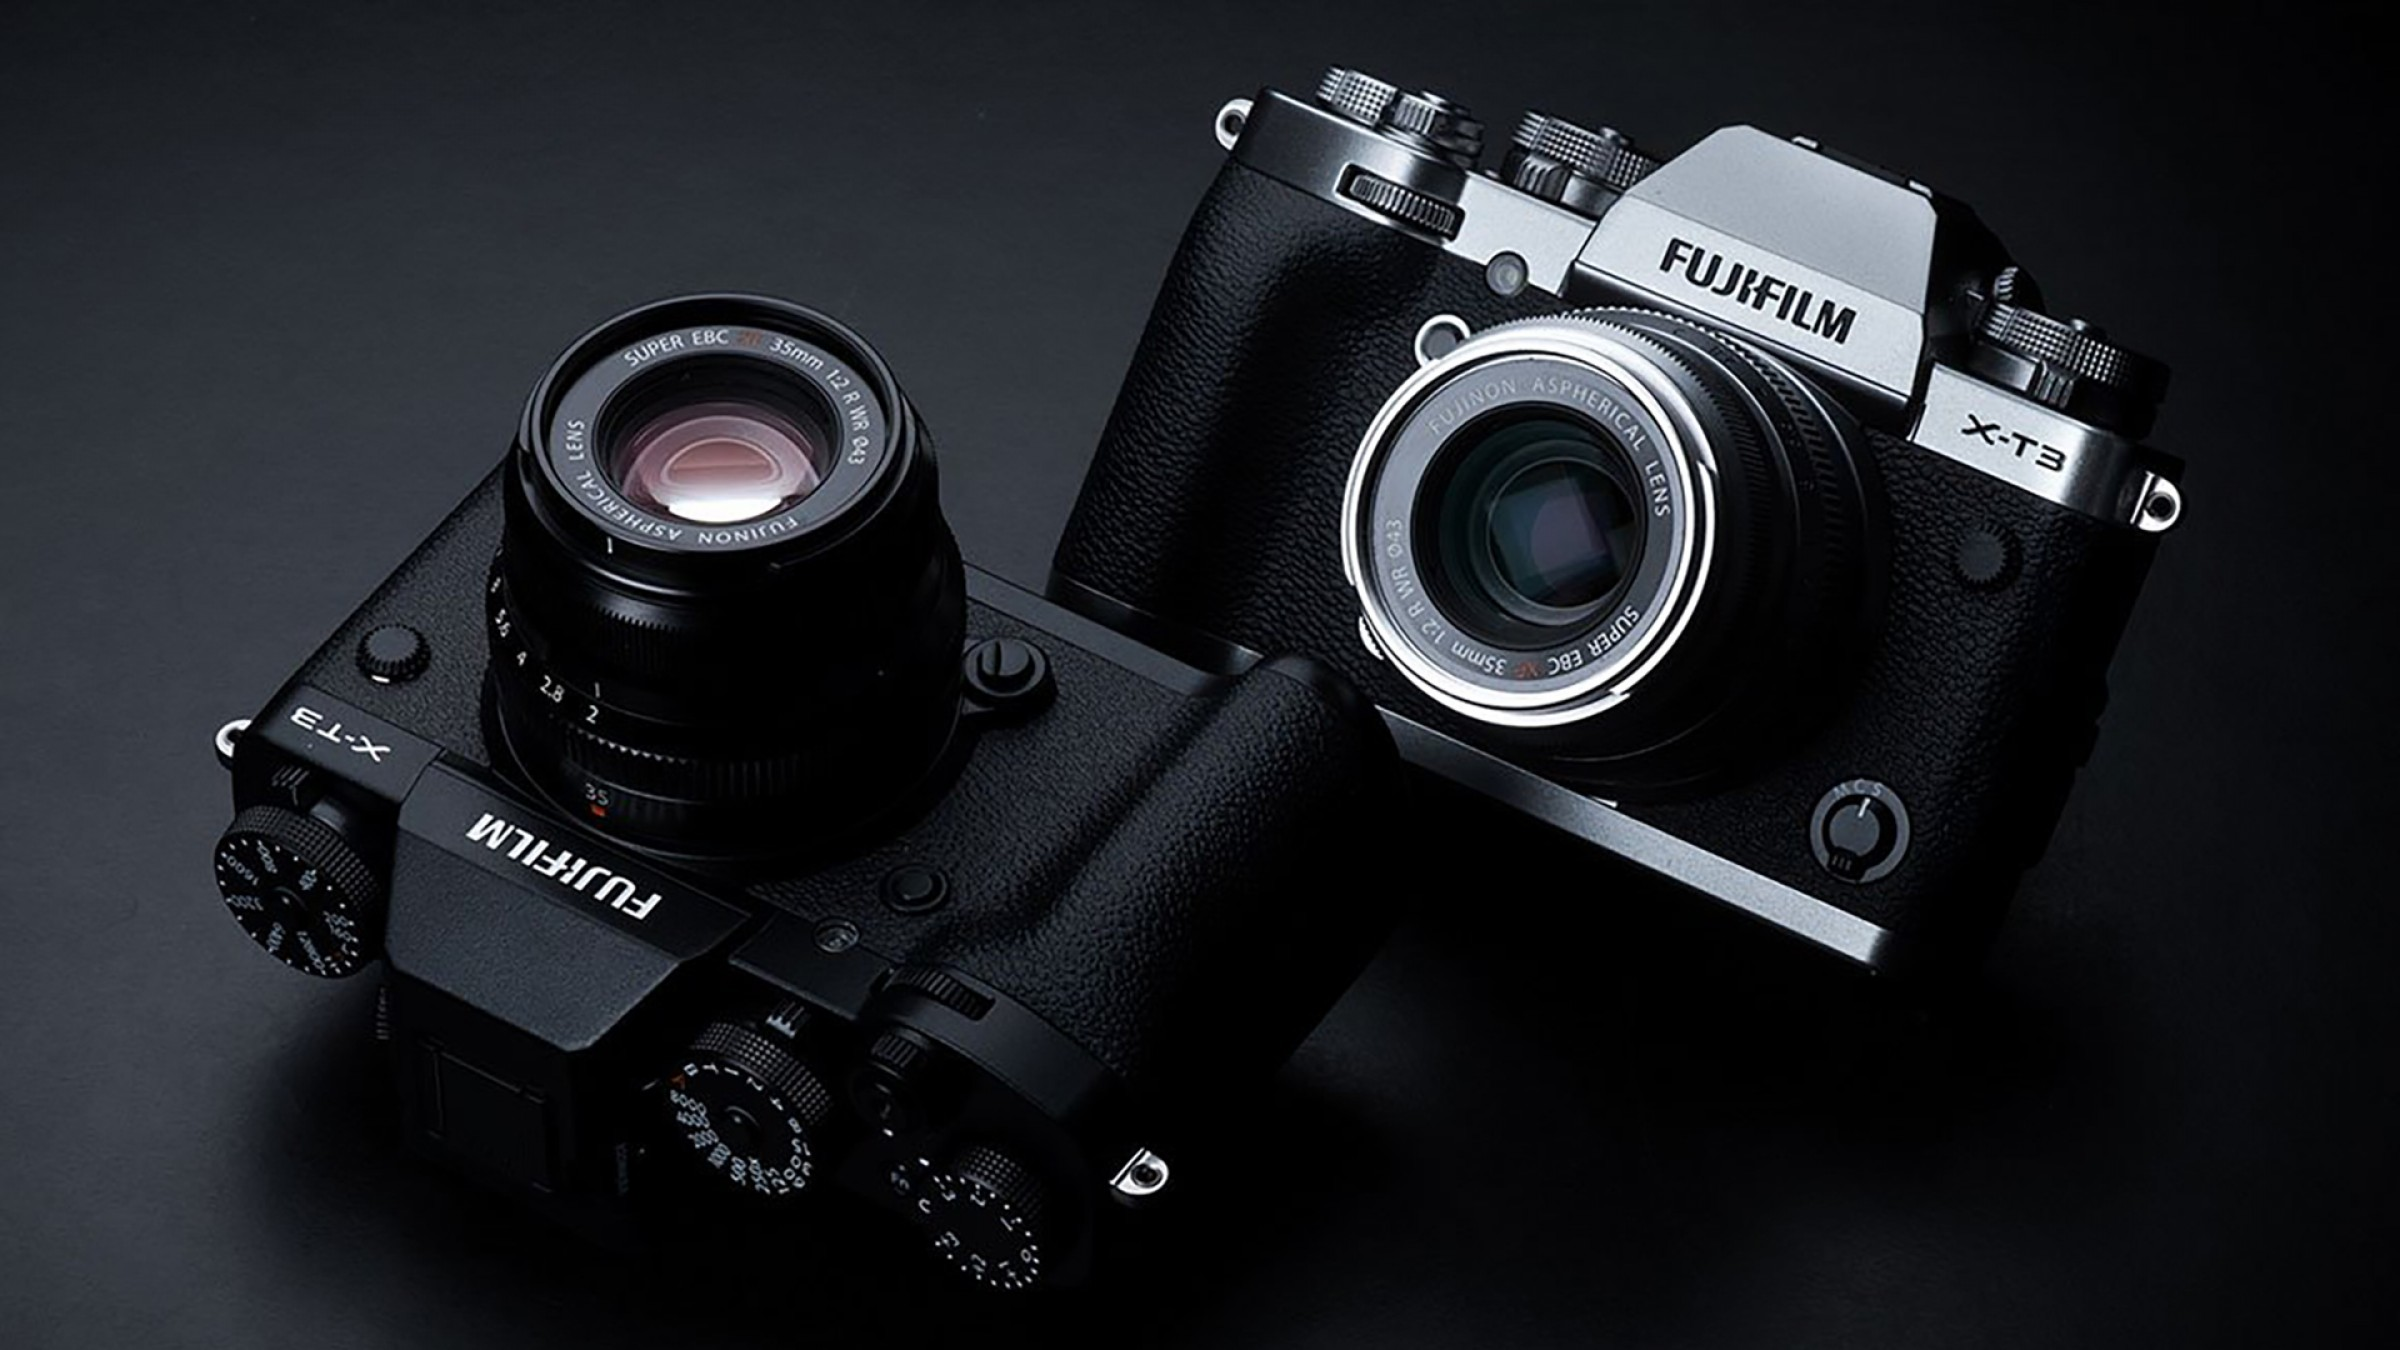 Fujifilm X-T3 Review: Shooting a Short Film in 4K DCI Anamorphic